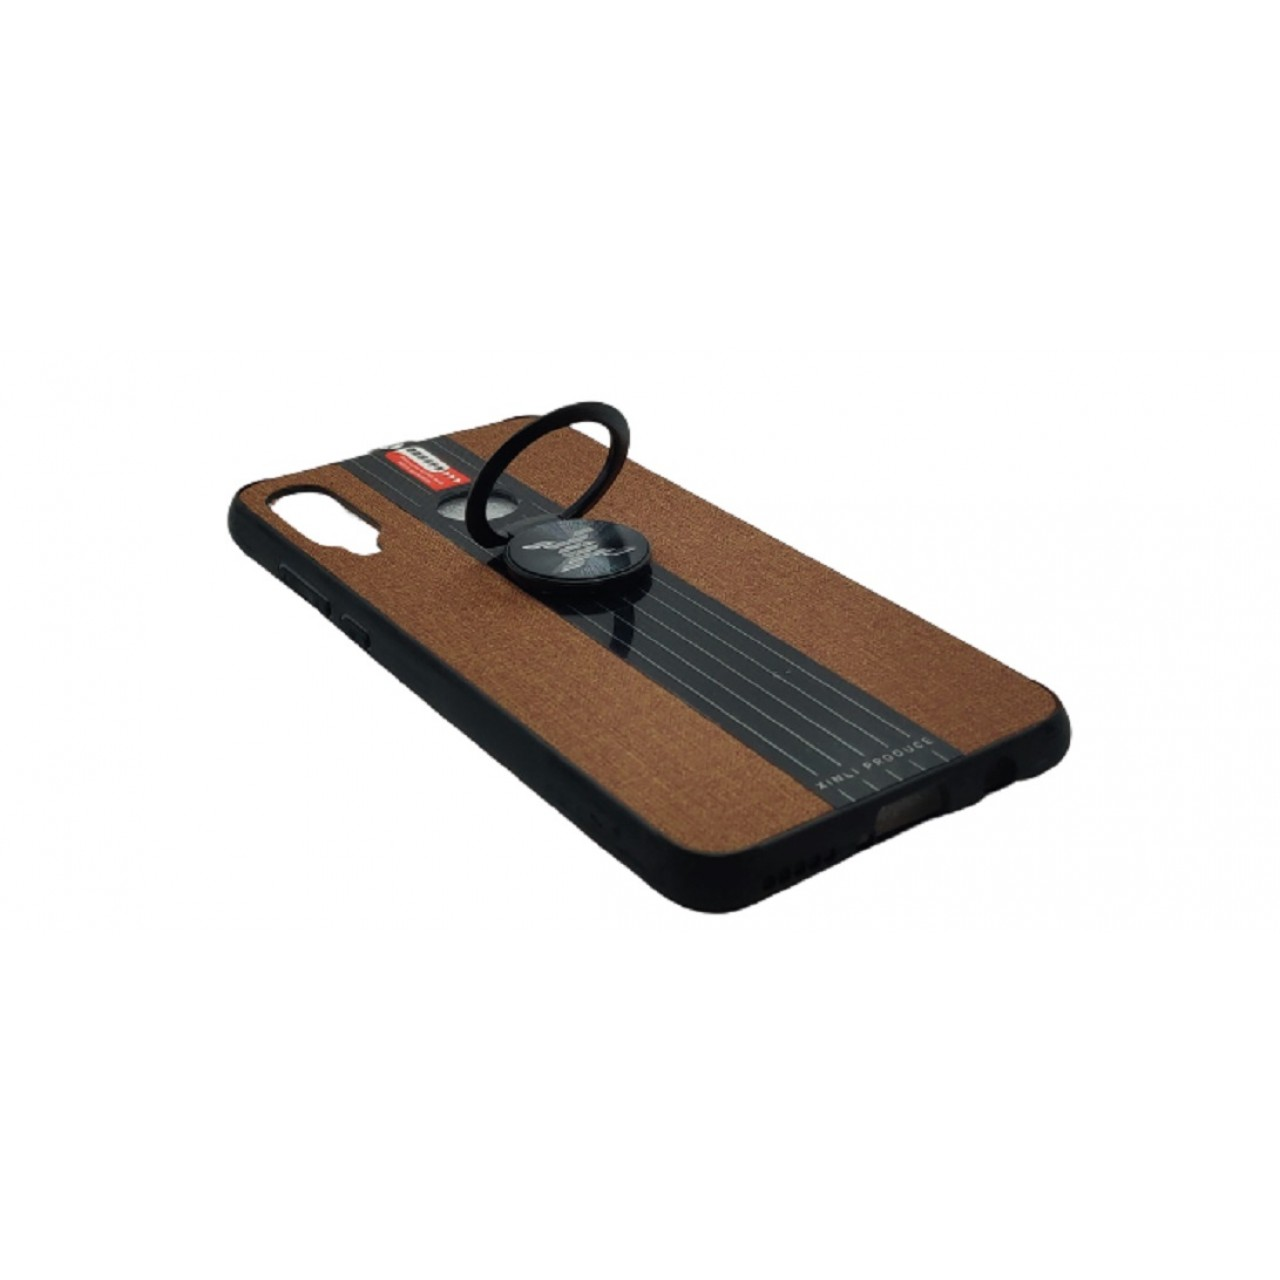 Back Case Cloth Pattern with ring for Huawei P30 Lite Brown - Θήκη προστασίας με δαχτυλίδι στην πλάτη Καφέ - OEM